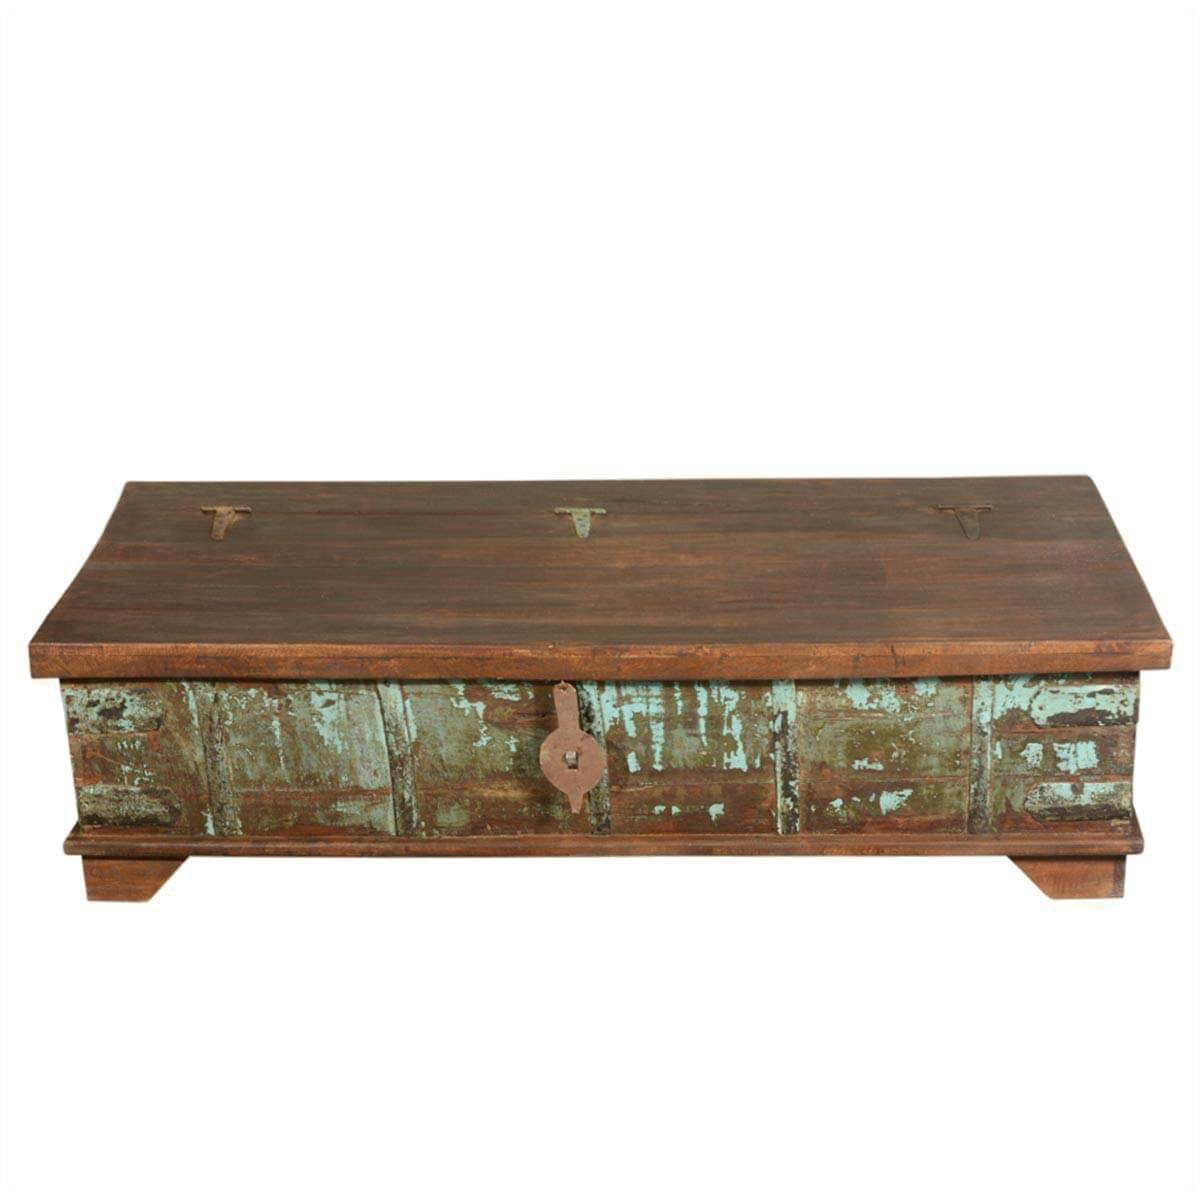 Mediterranean rustic reclaimed wood storage trunk coffee table Recycled wood coffee table